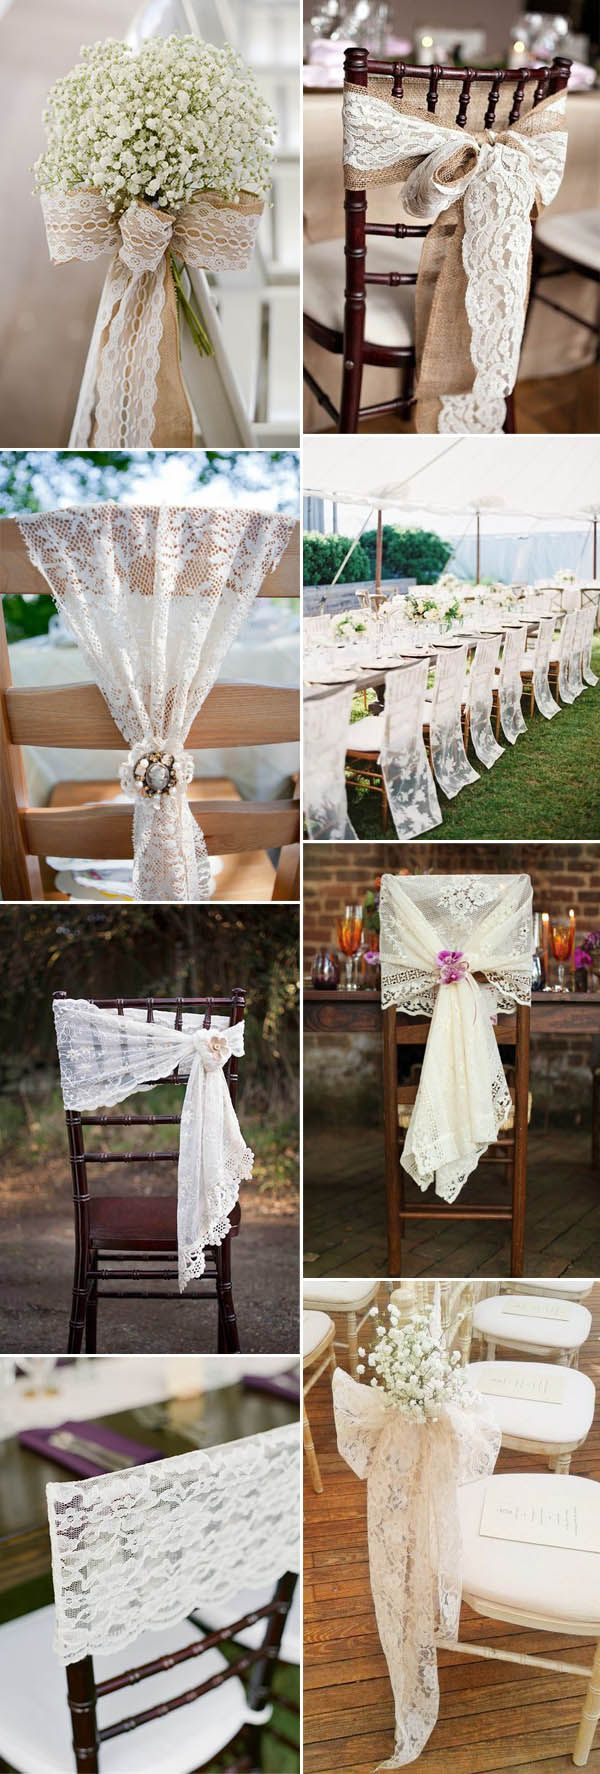 Great Ideas to Incoporate Lace Into Your Vintage Weddings